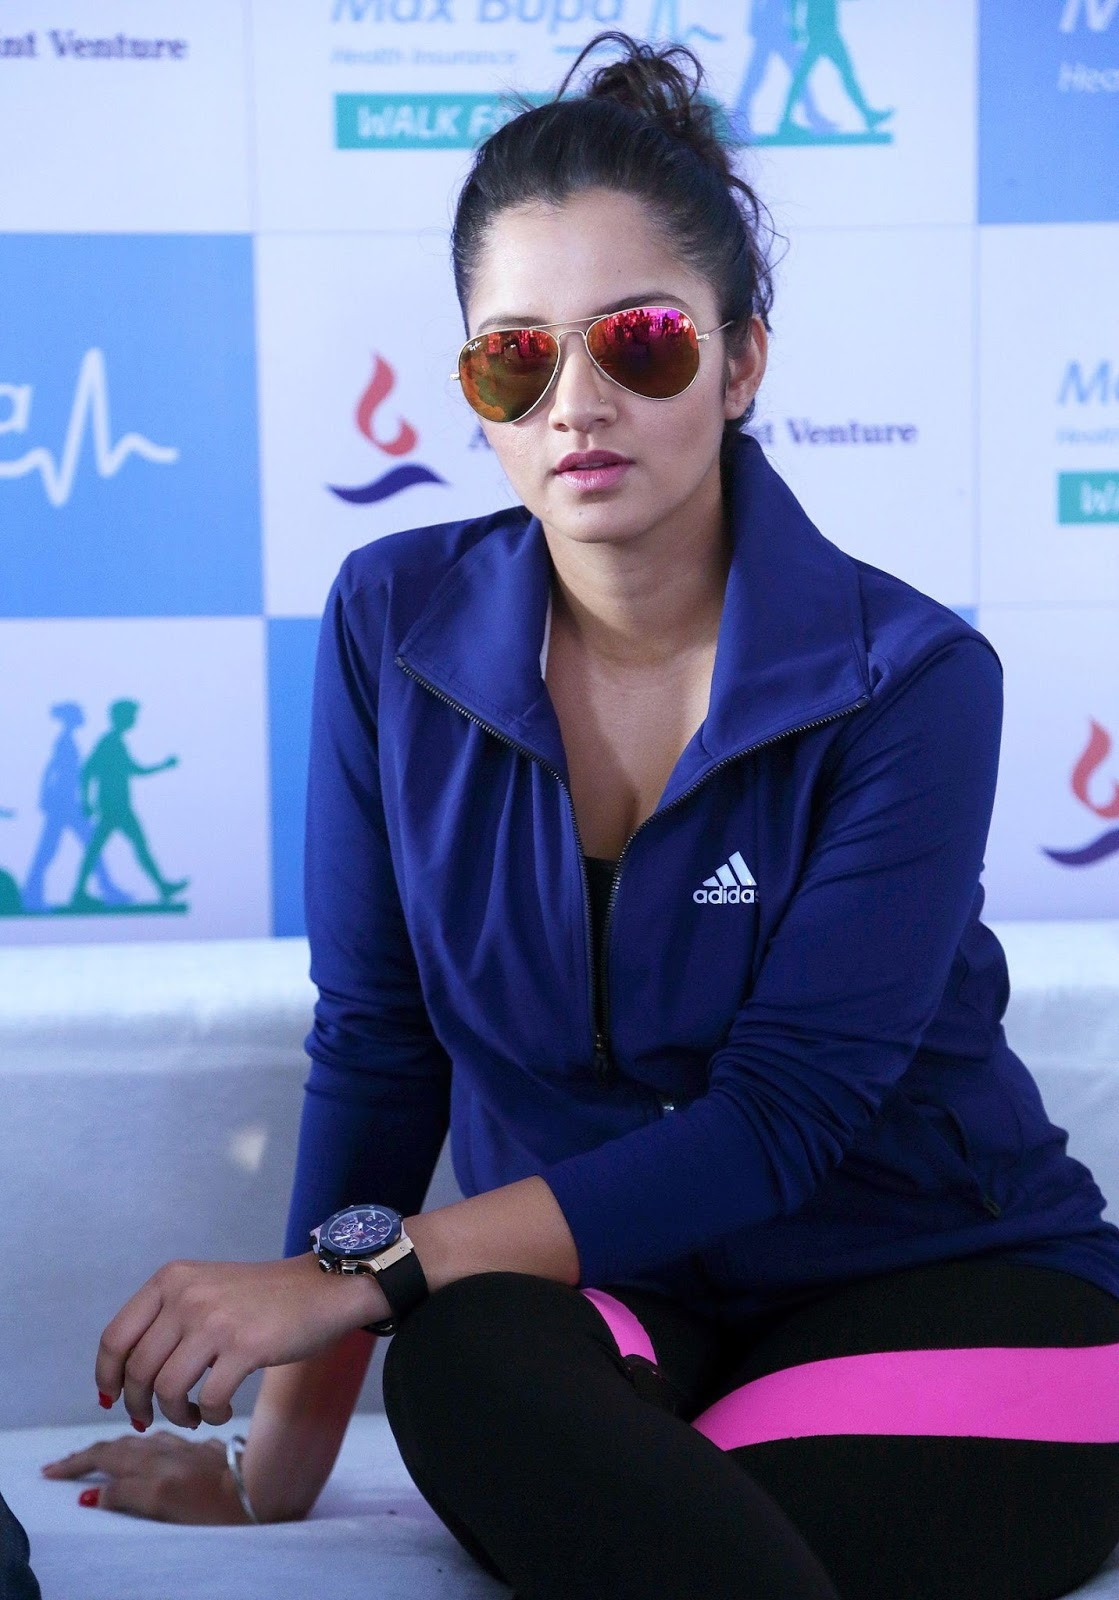 High Quality Bollywood Celebrity Pictures Sania Mirza -3653